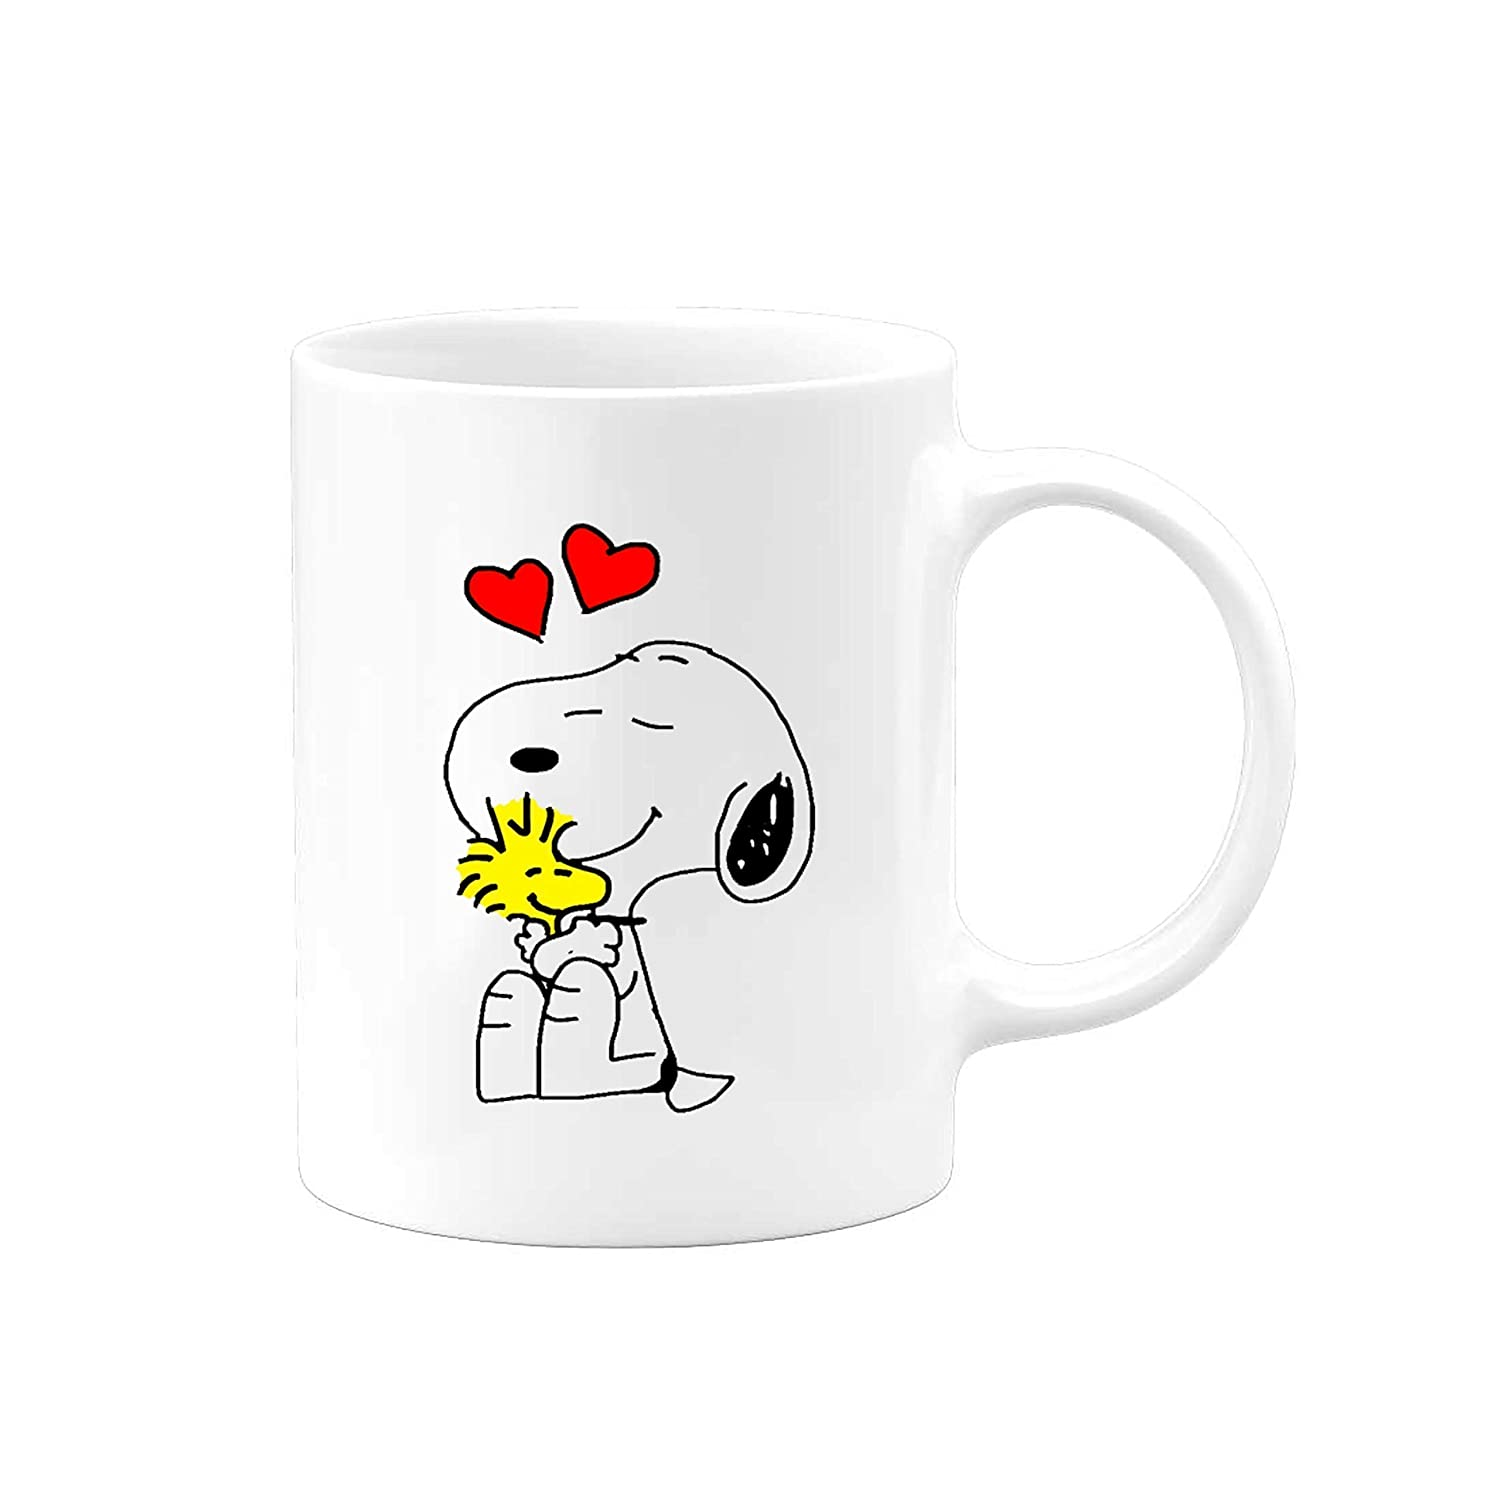 Charlie Brown Peanuts Snoopy and Woodstock Love Coffee Mug | 11 ounce cup | Serenity Home Goods | Cute Gift